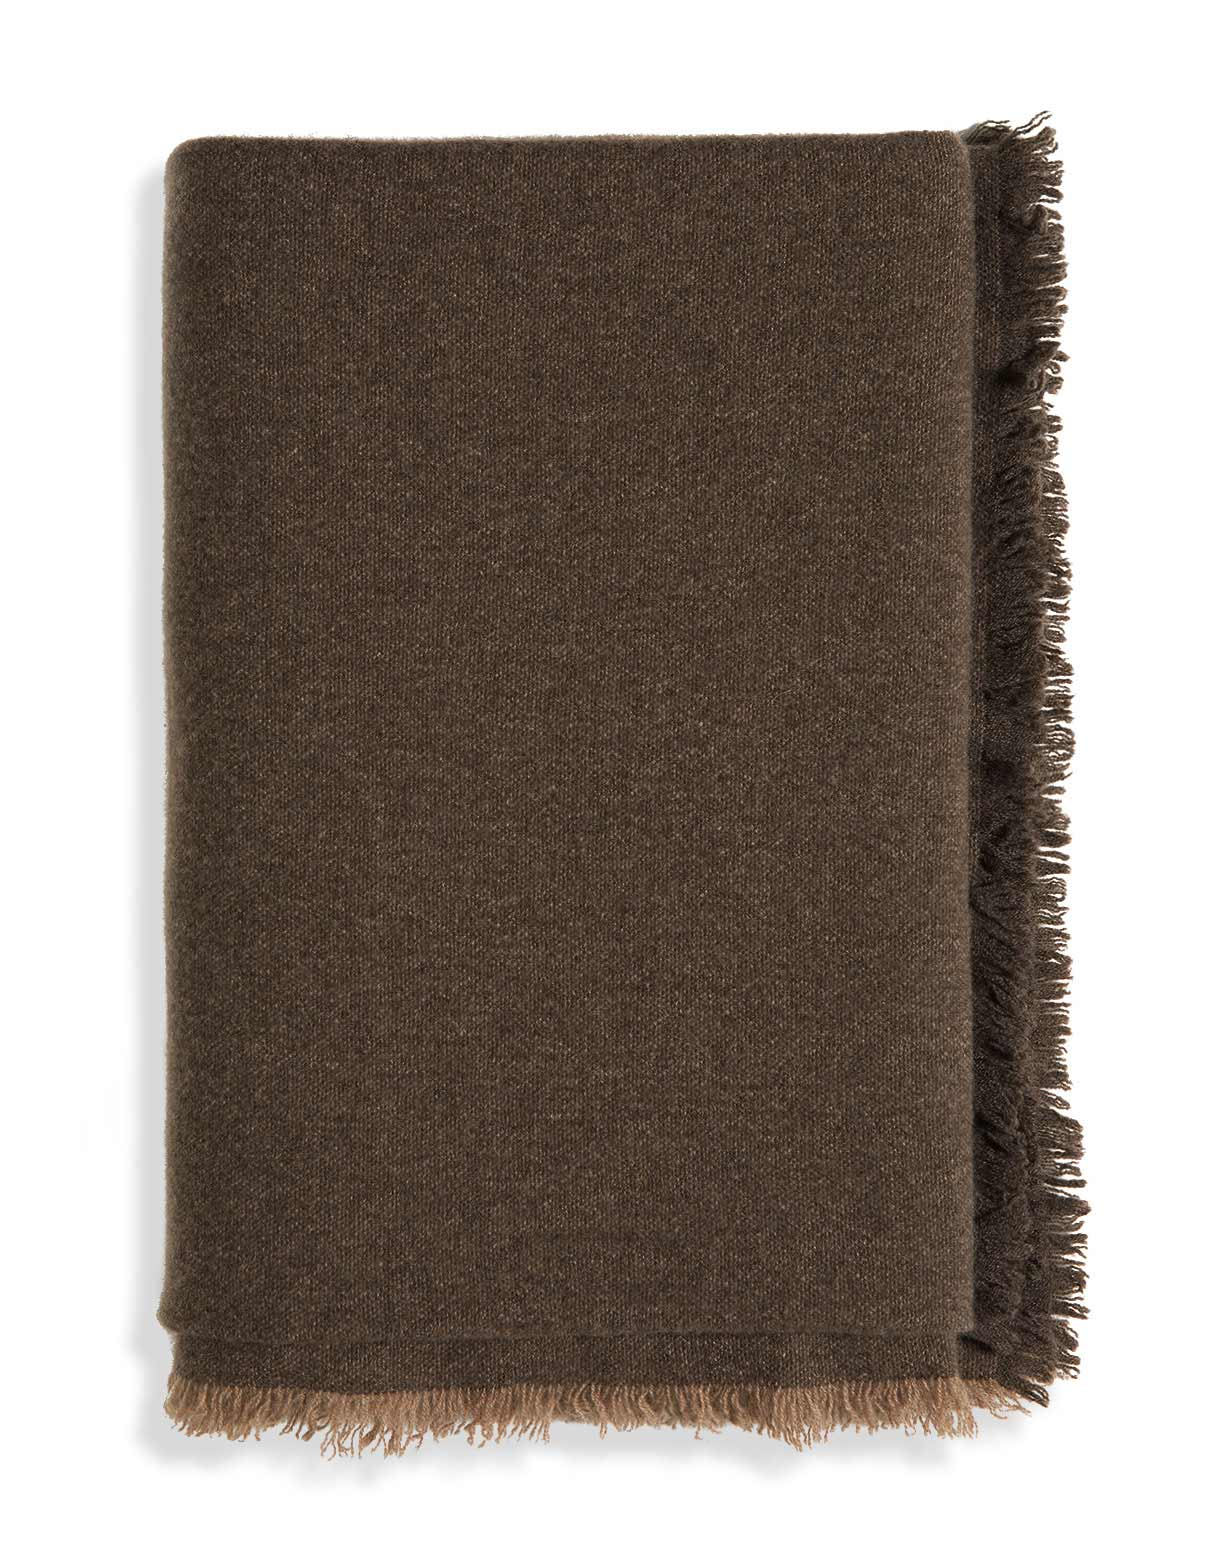 Light Cashmere Throw with Fringes